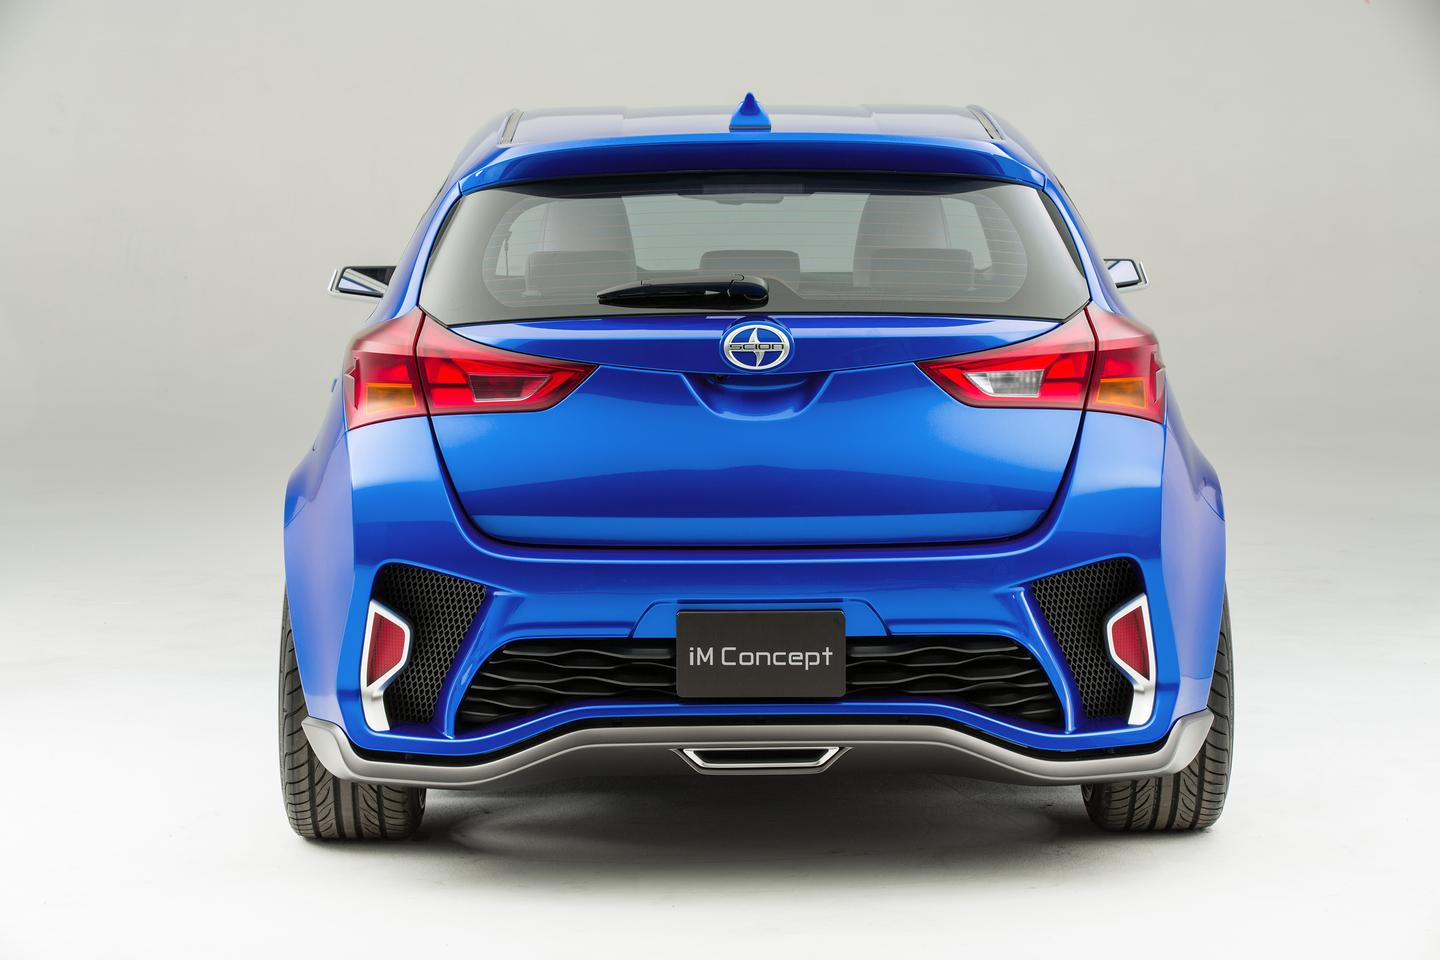 A rear view of the iM Concept